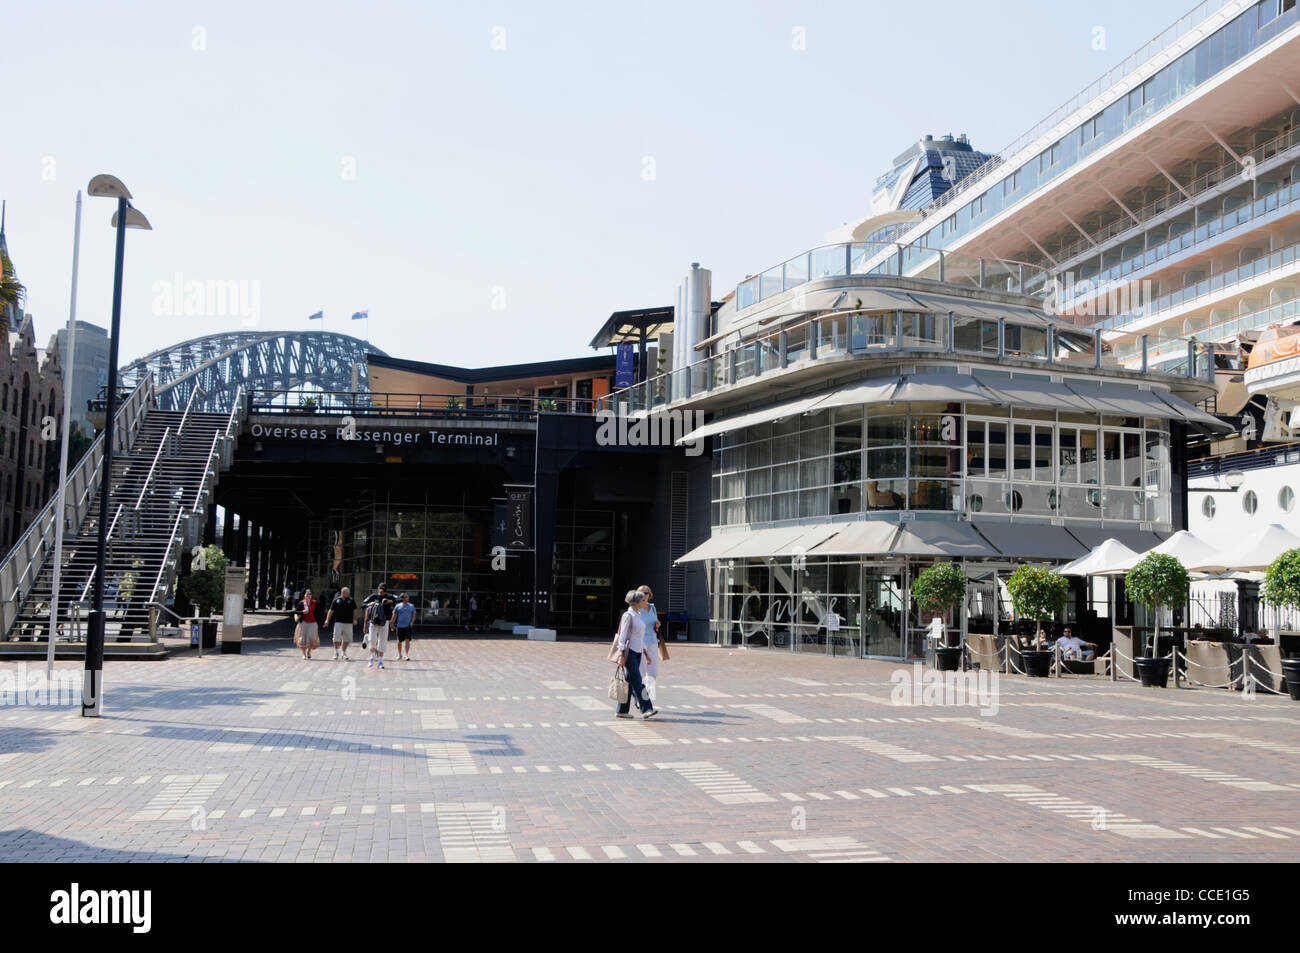 The Overseas Passenger Terminal on Circular Quay in Sydney,New South Wales,Australia - Stock Image